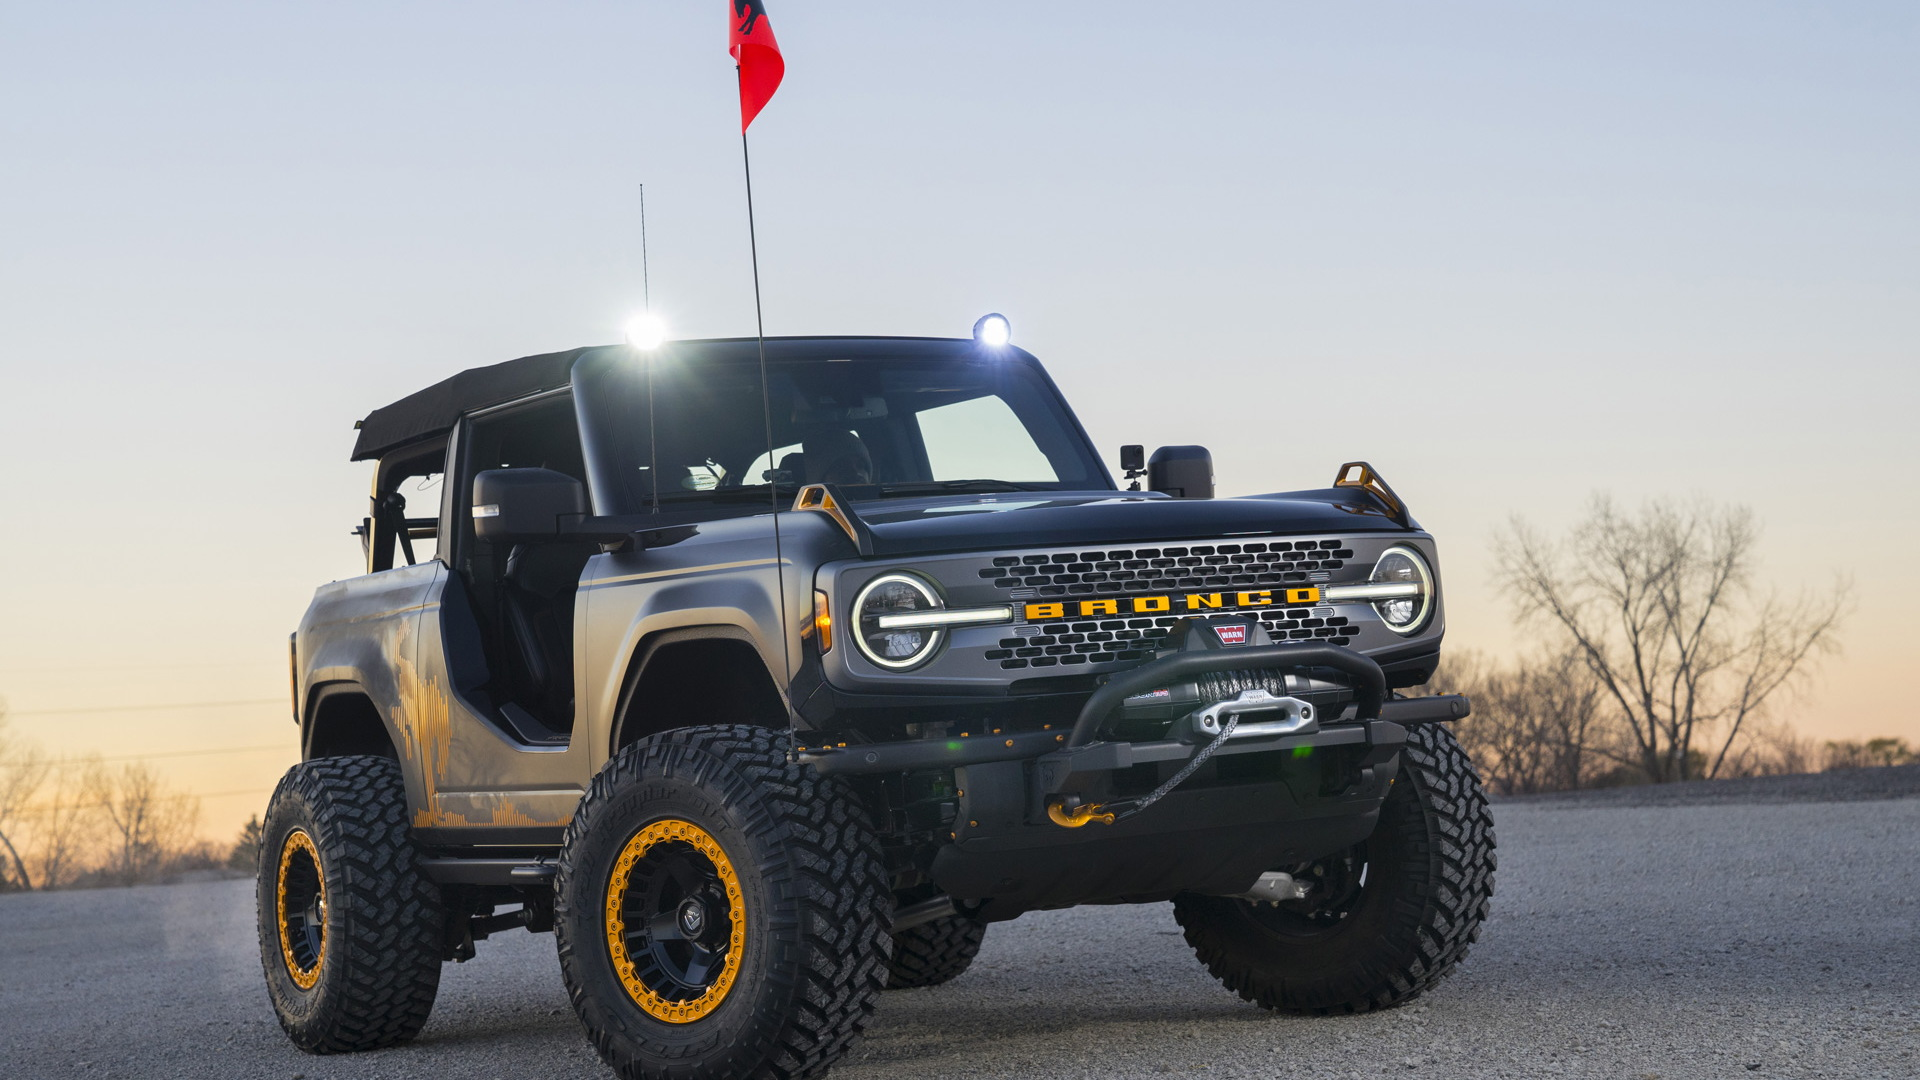 Ford Bronco Badlands Sasquatch 2-Door Concept